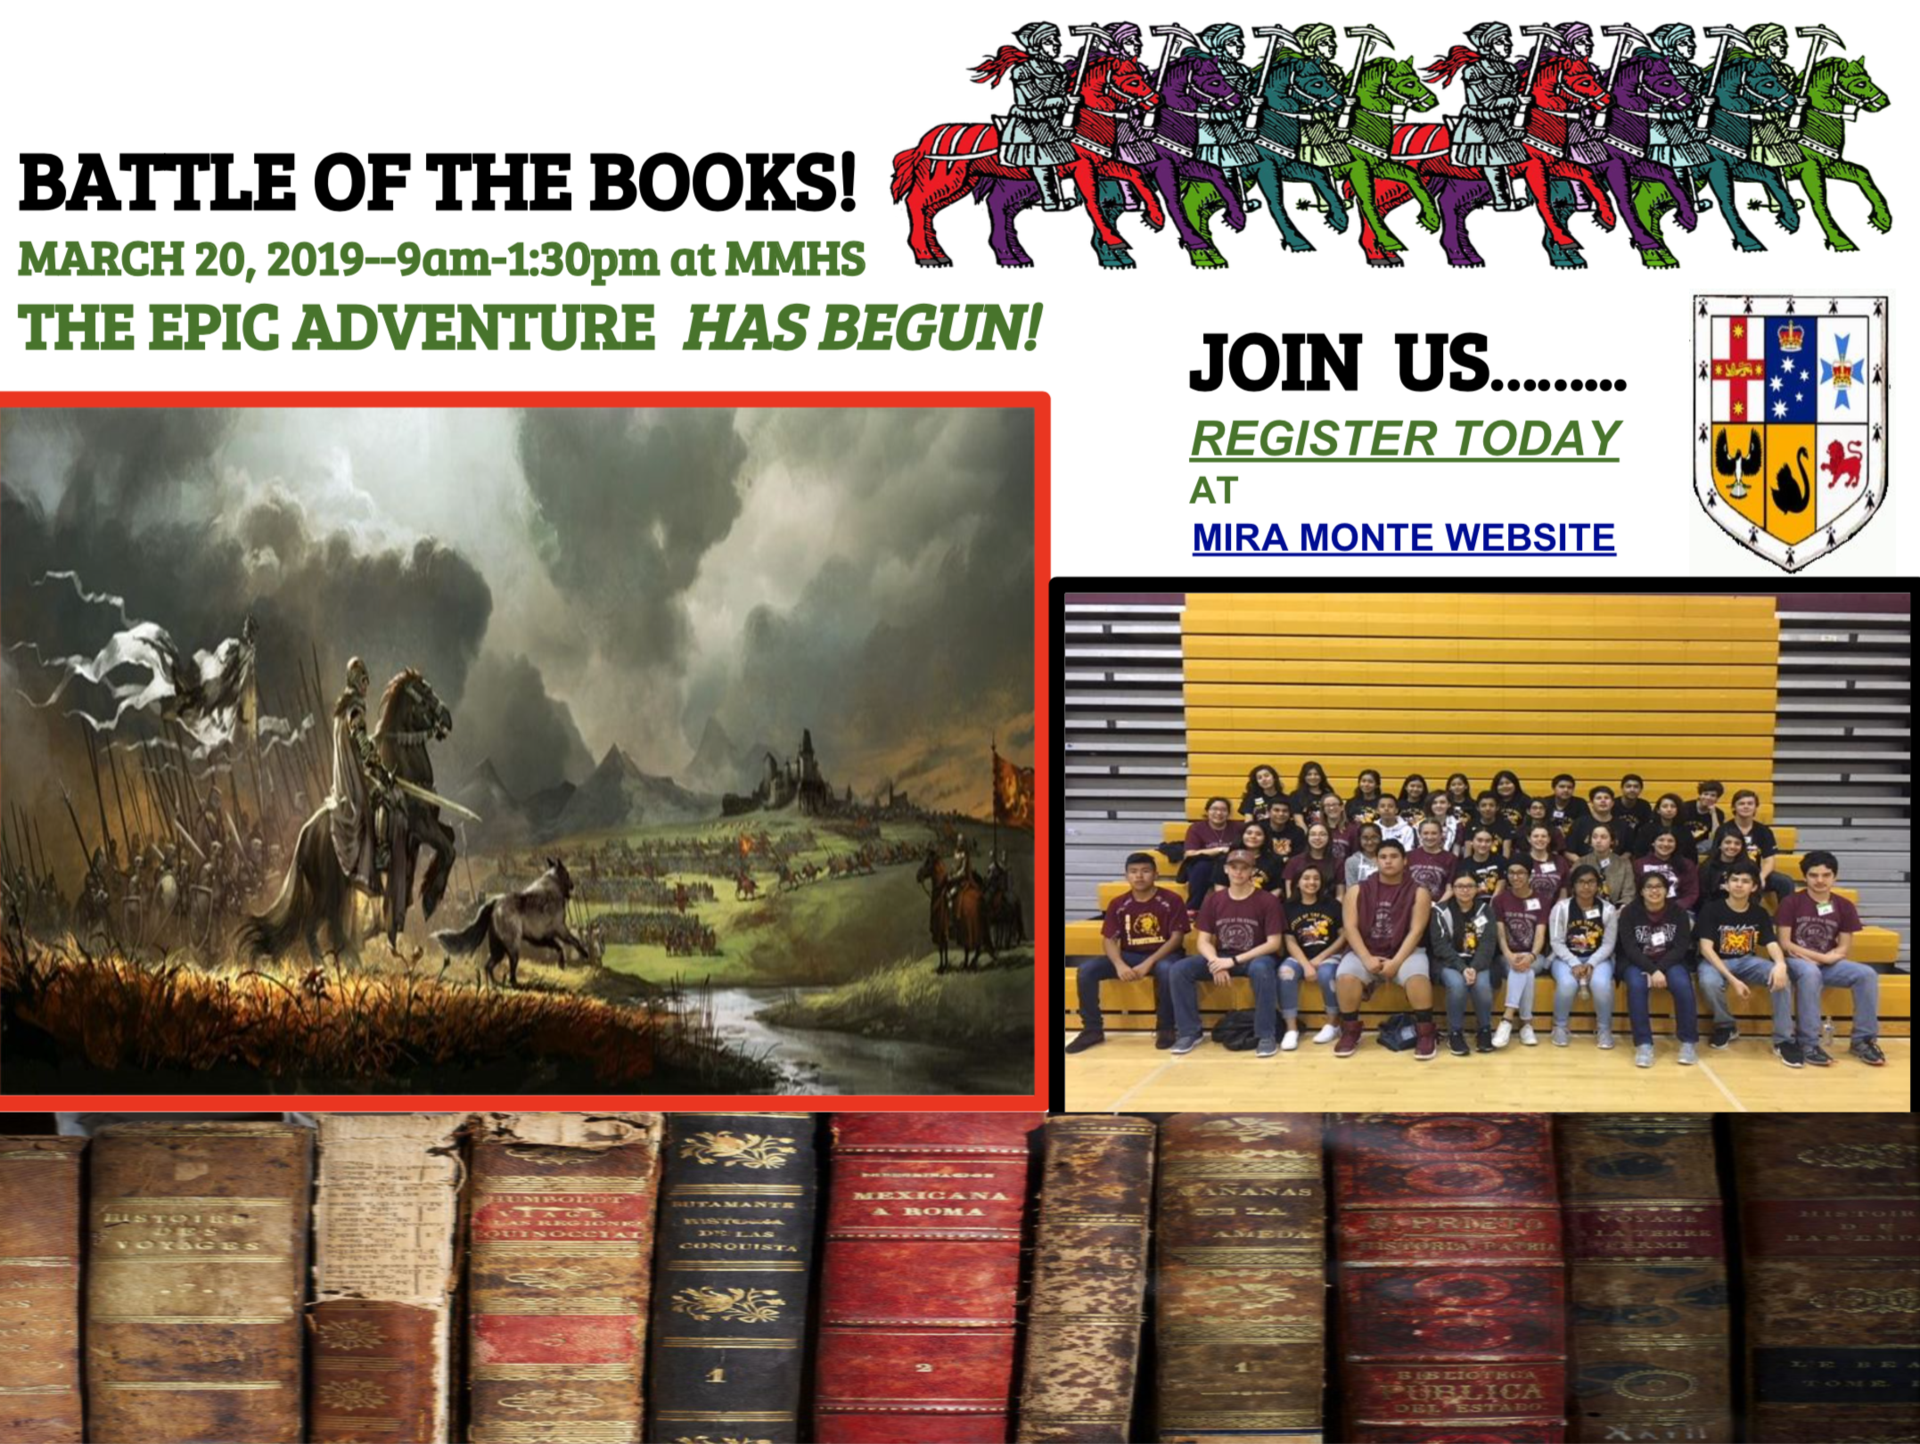 Battle of the Books Flyer